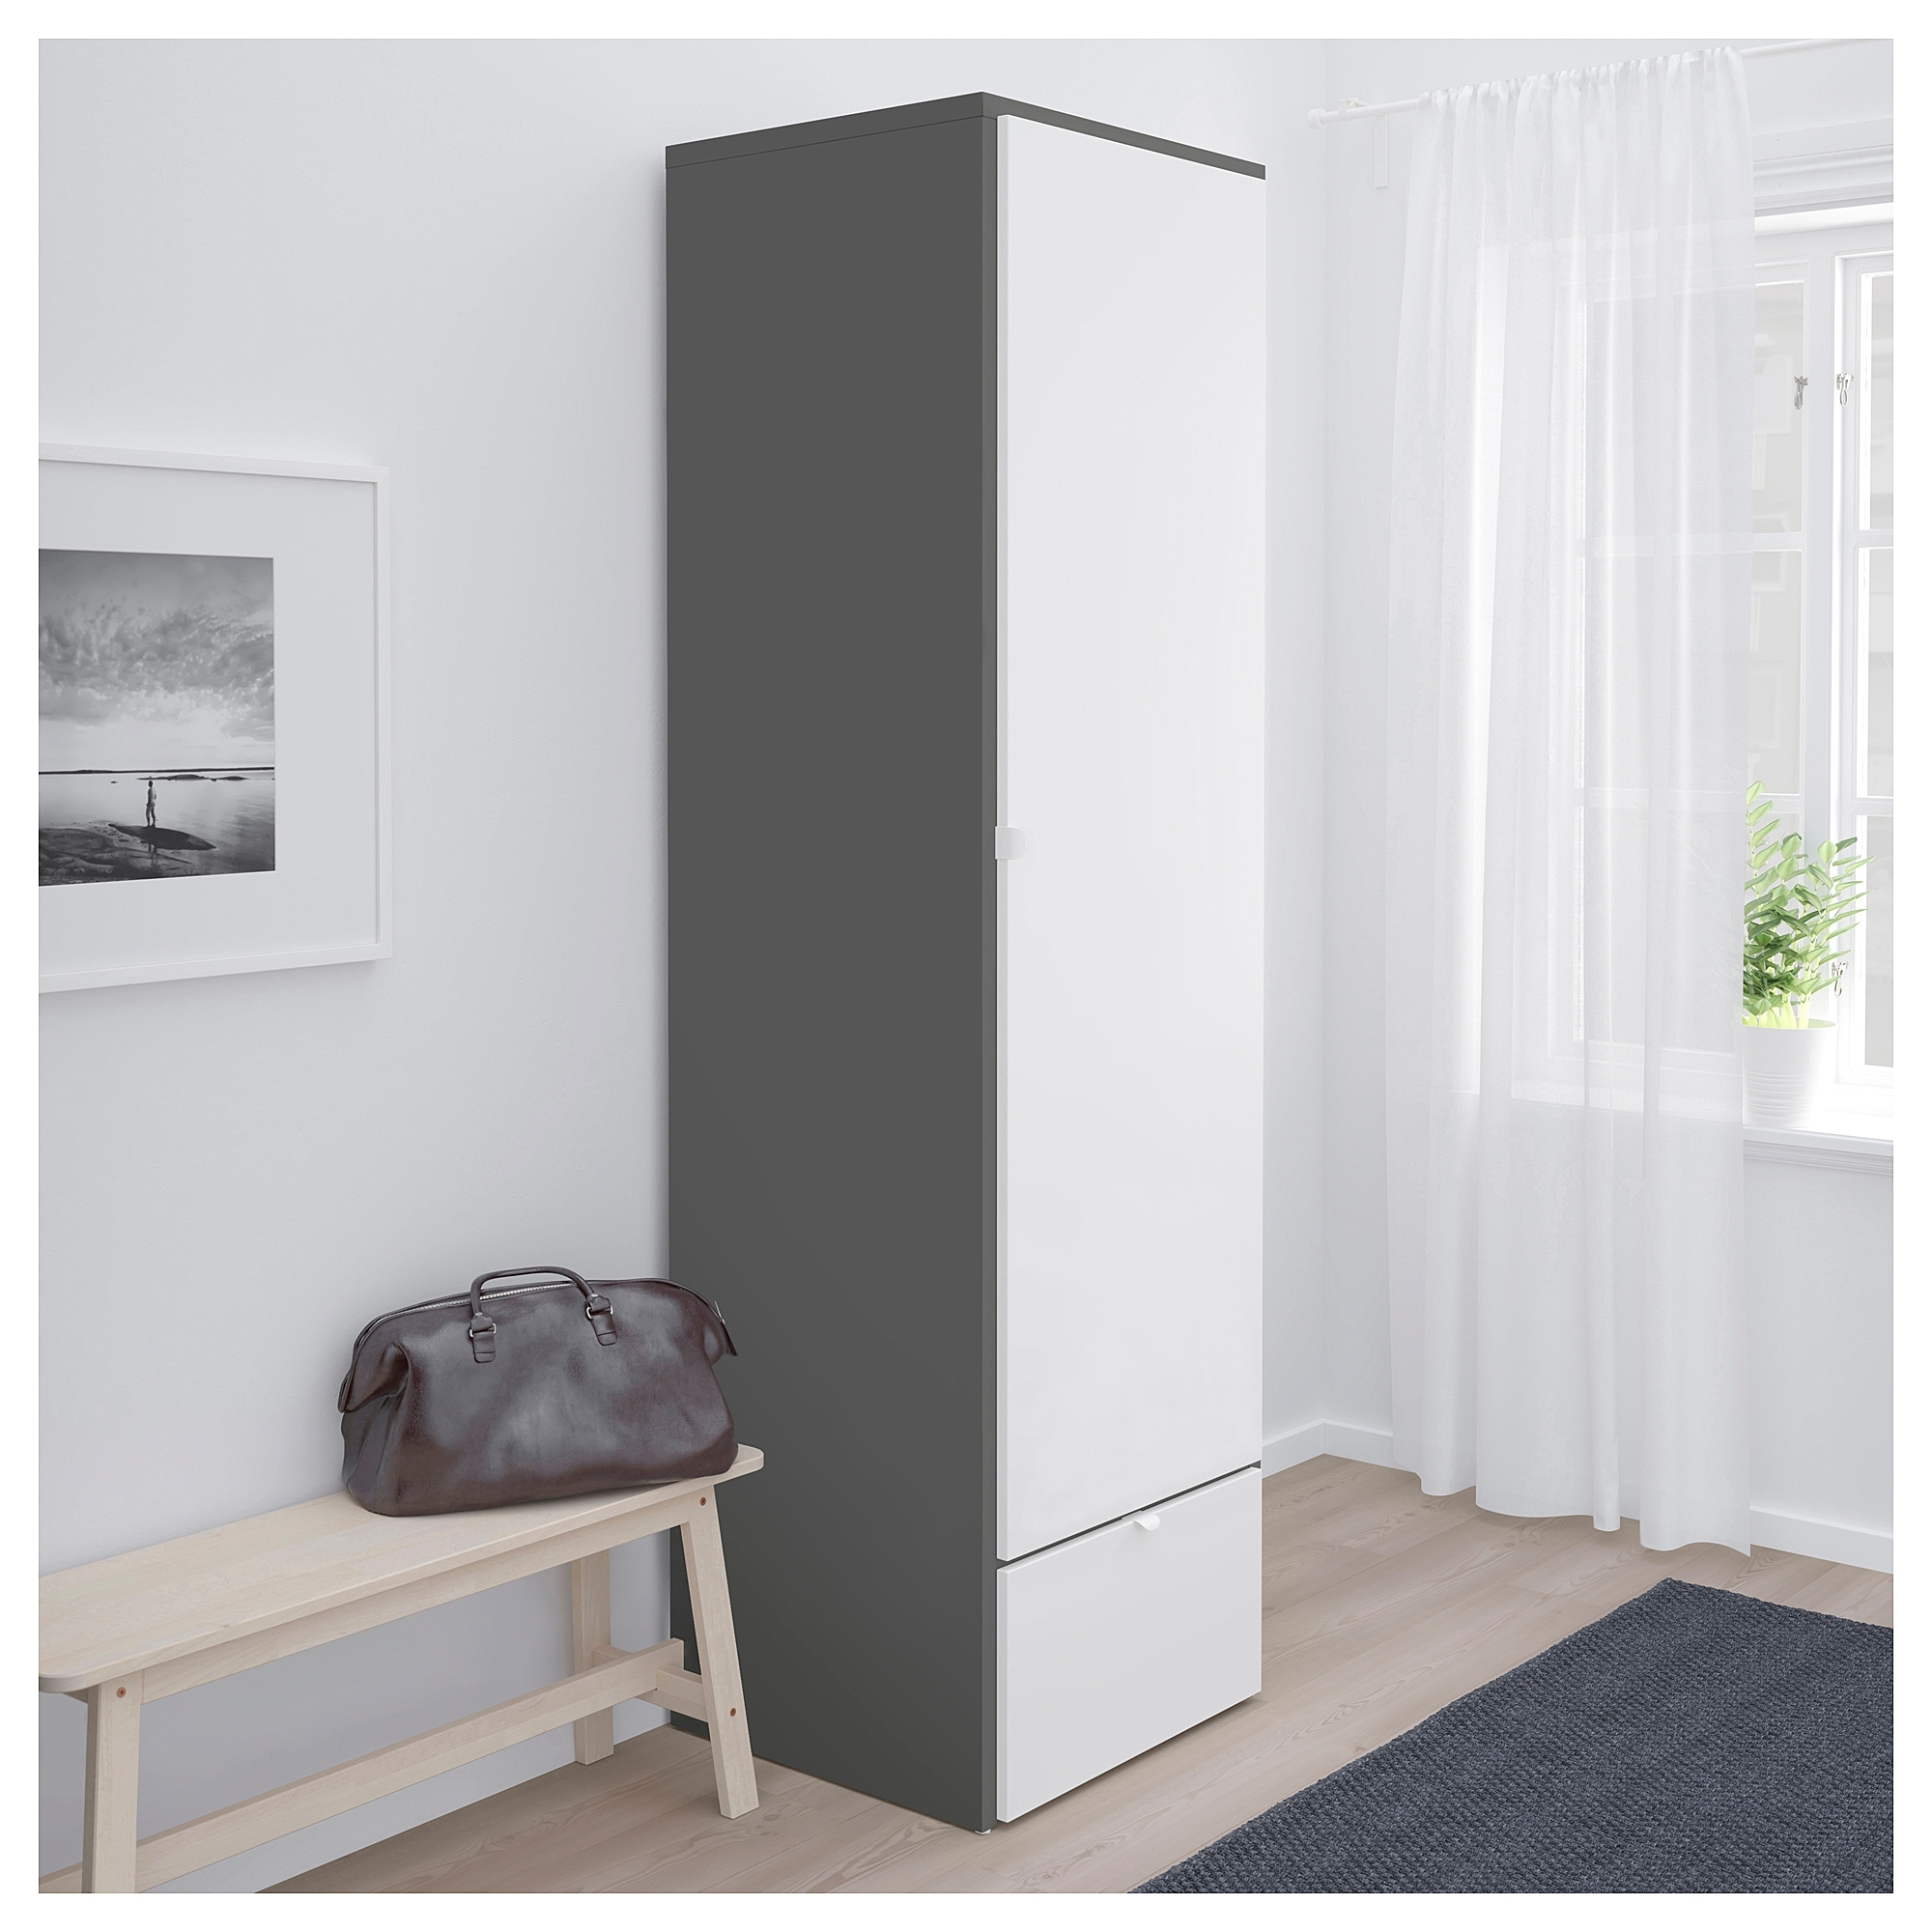 Grey Wardrobes With Newest Visthus Wardrobe Grey/white 63x59x216 Cm – Ikea (View 5 of 15)